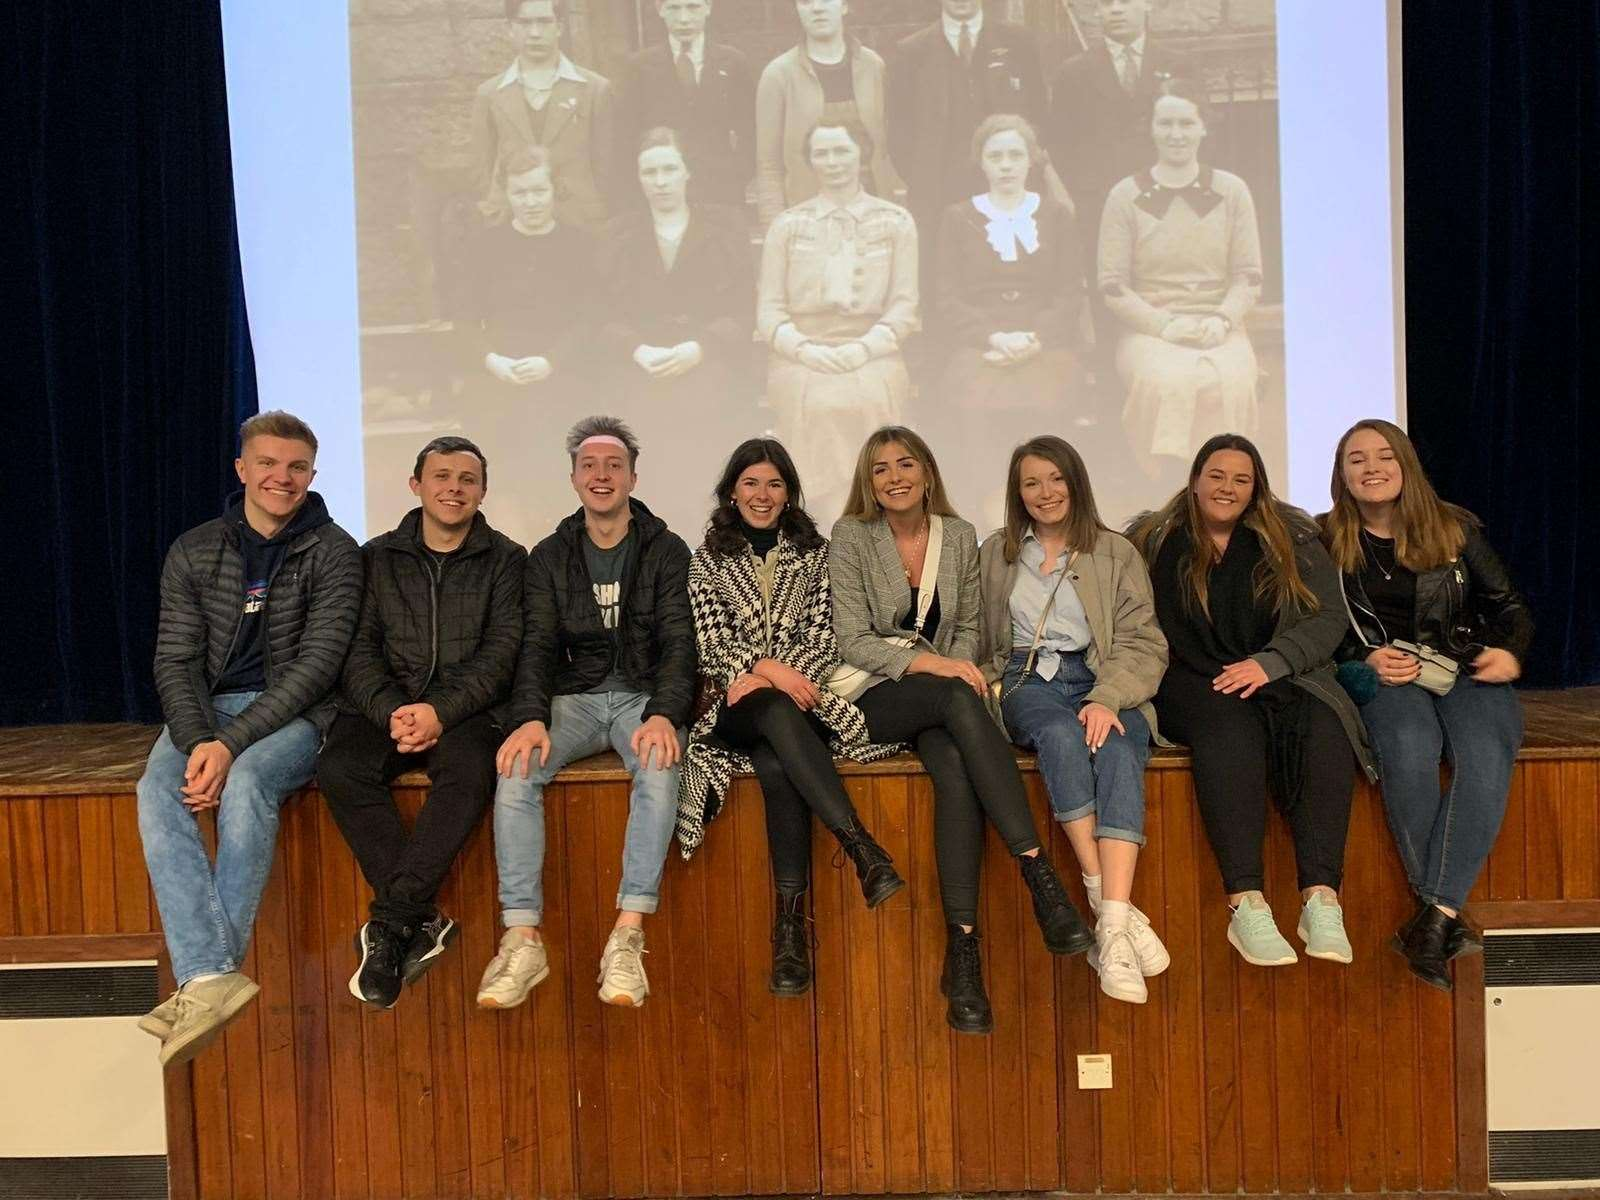 Fomer pupils got together during the tours including members of the class of 2014.